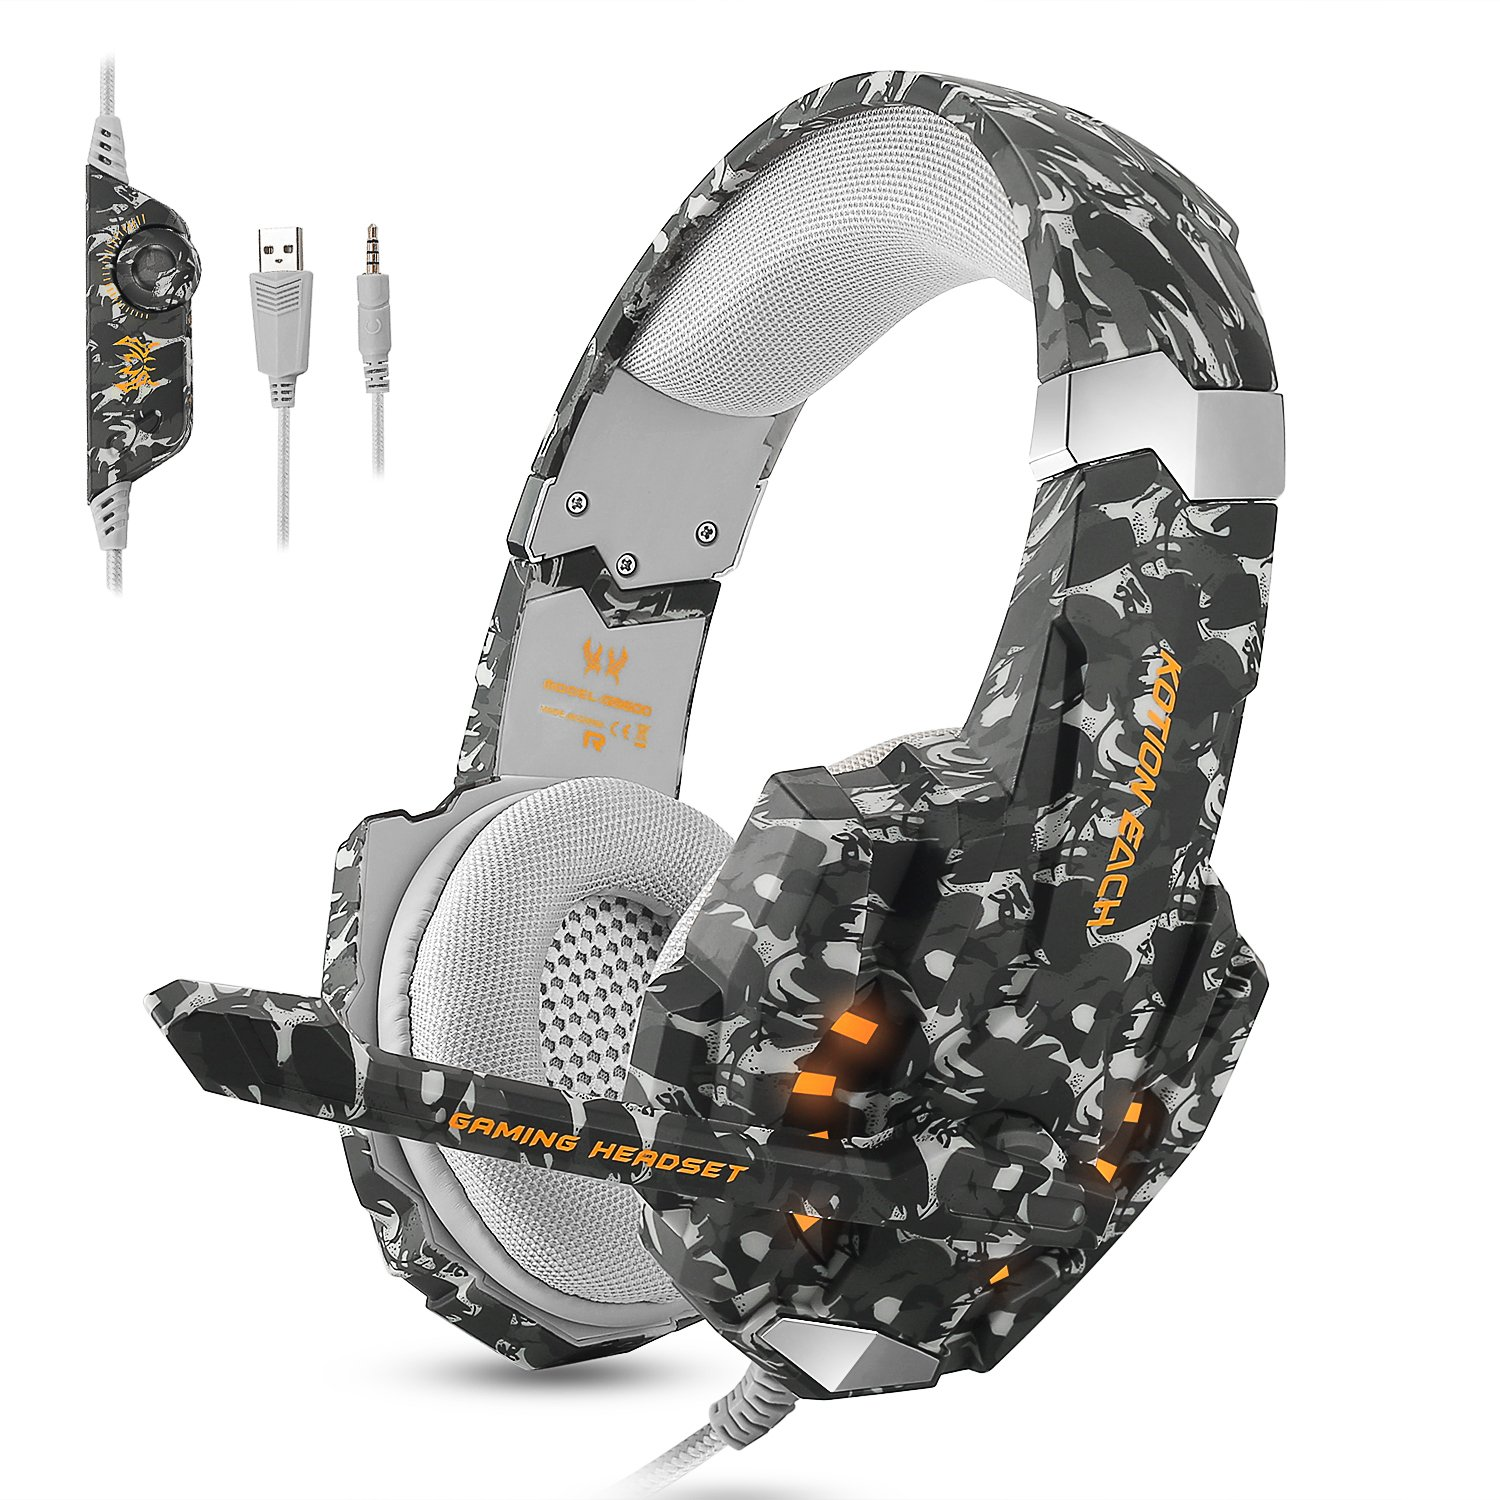 ECOOPRO Gaming Headset for PS4 Xbox One PC, Stereo Gaming Headphones with Noise Cancelling Mic, Bass Surround, LED Light & Soft Memory Earmuffs for PC Mac Nintendo Switch (Camouflage) by ECOOPRO